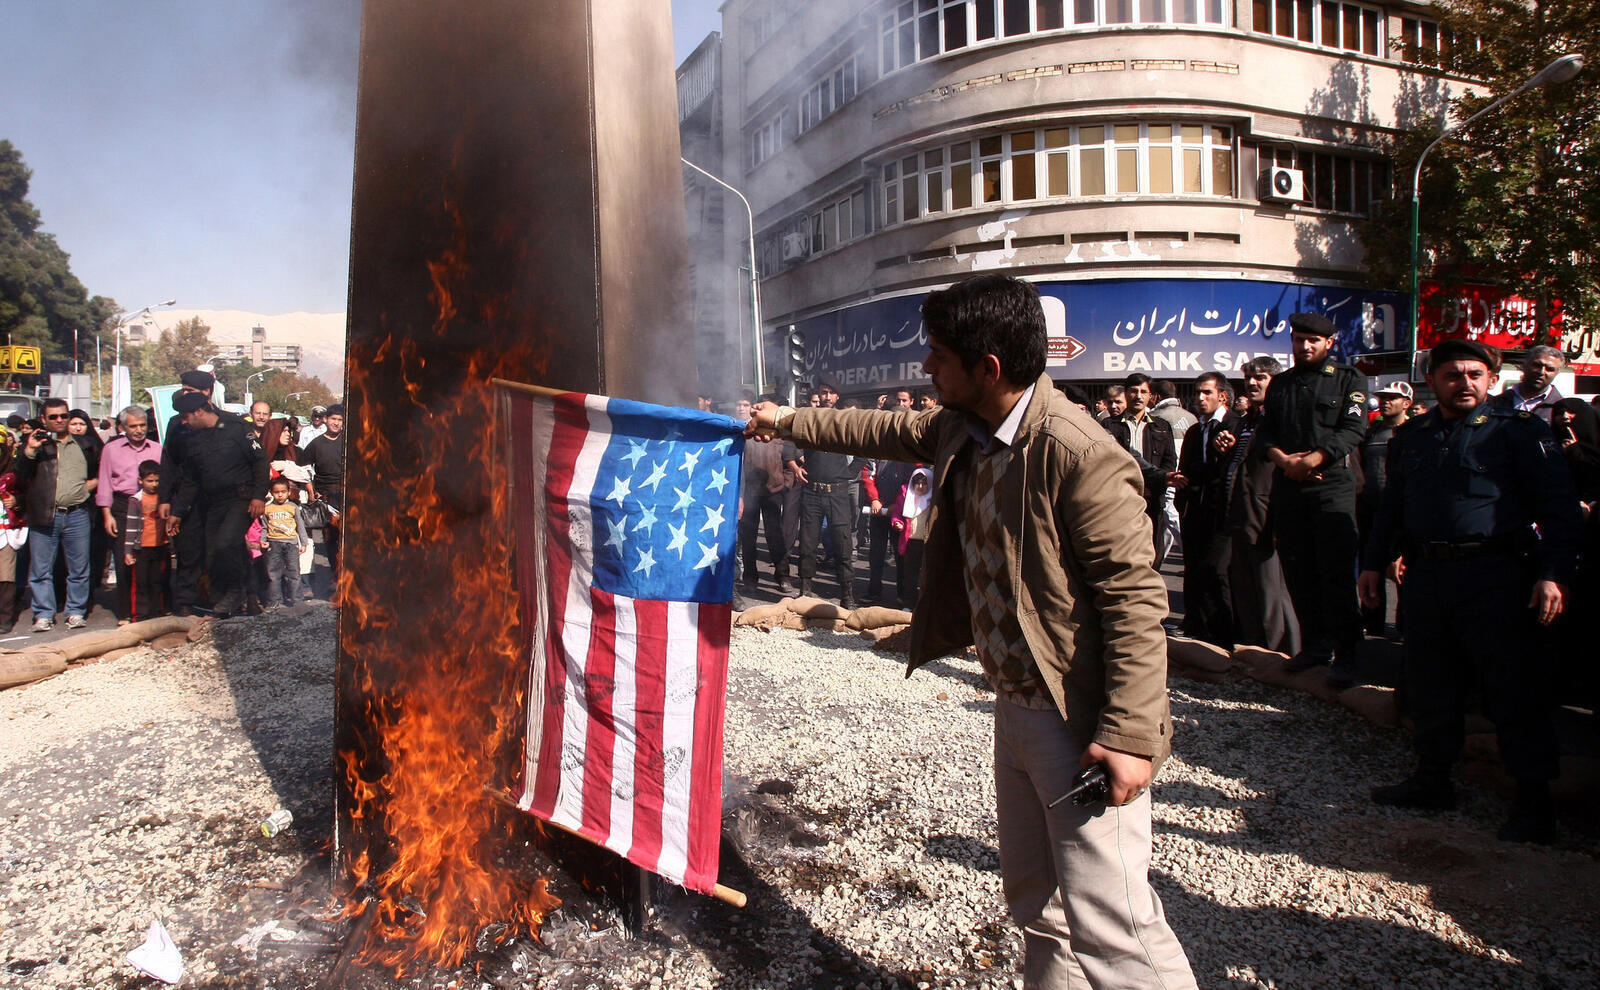 Iranian Factory Makes U.S. and Israeli Flags to Burn During Protests